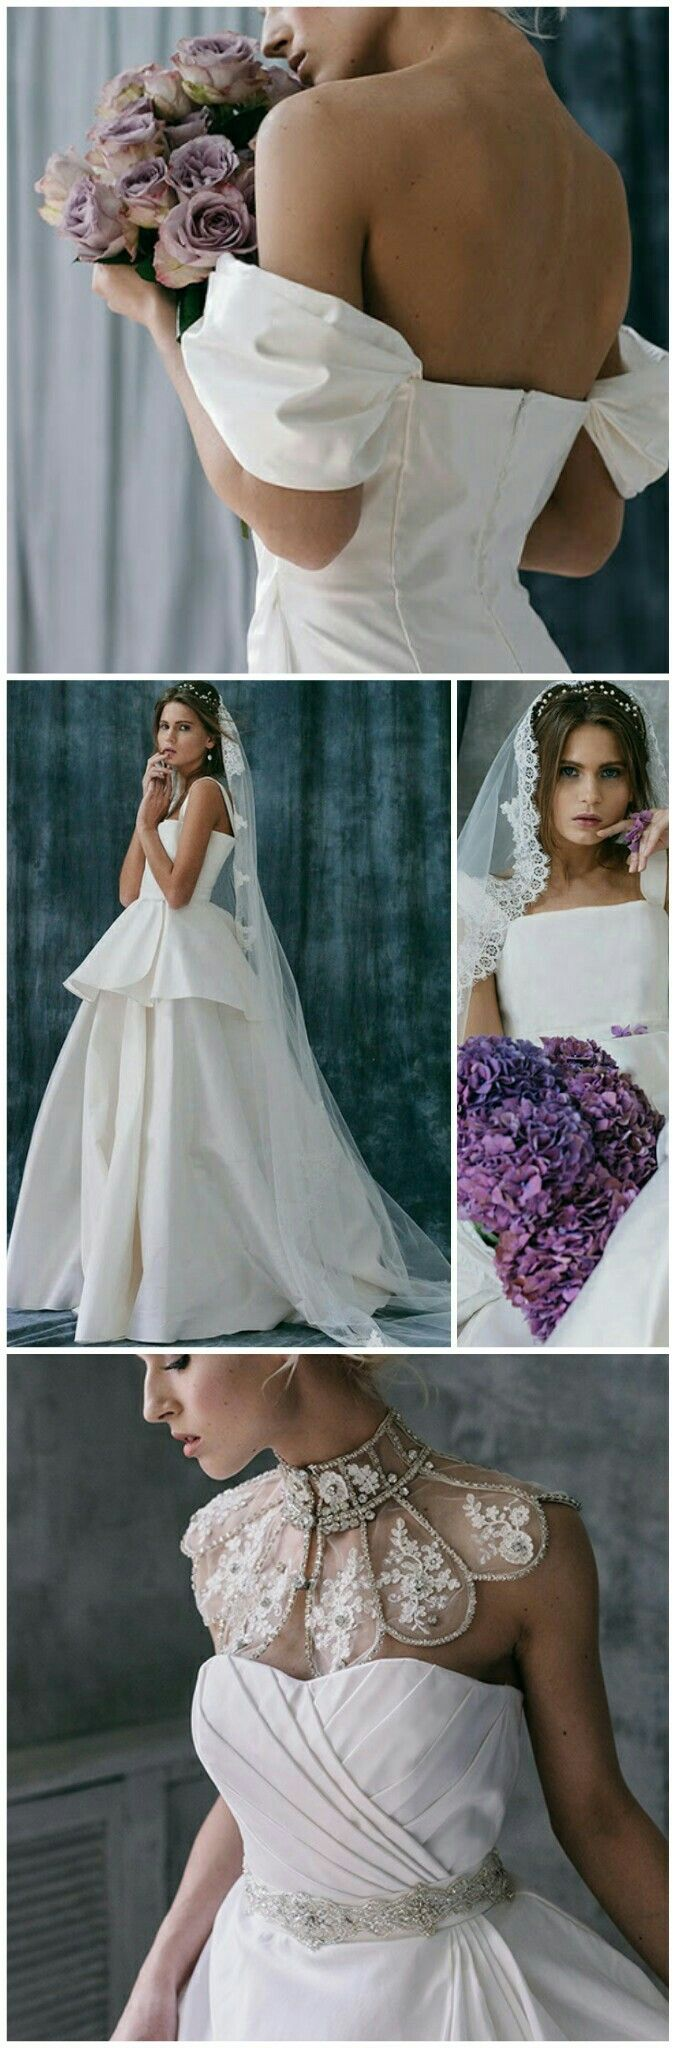 Wedding dresses of rich taffeta by designer Victoria Spirina https://www.etsy.com/ru/shop/VICTORIASPIRINA